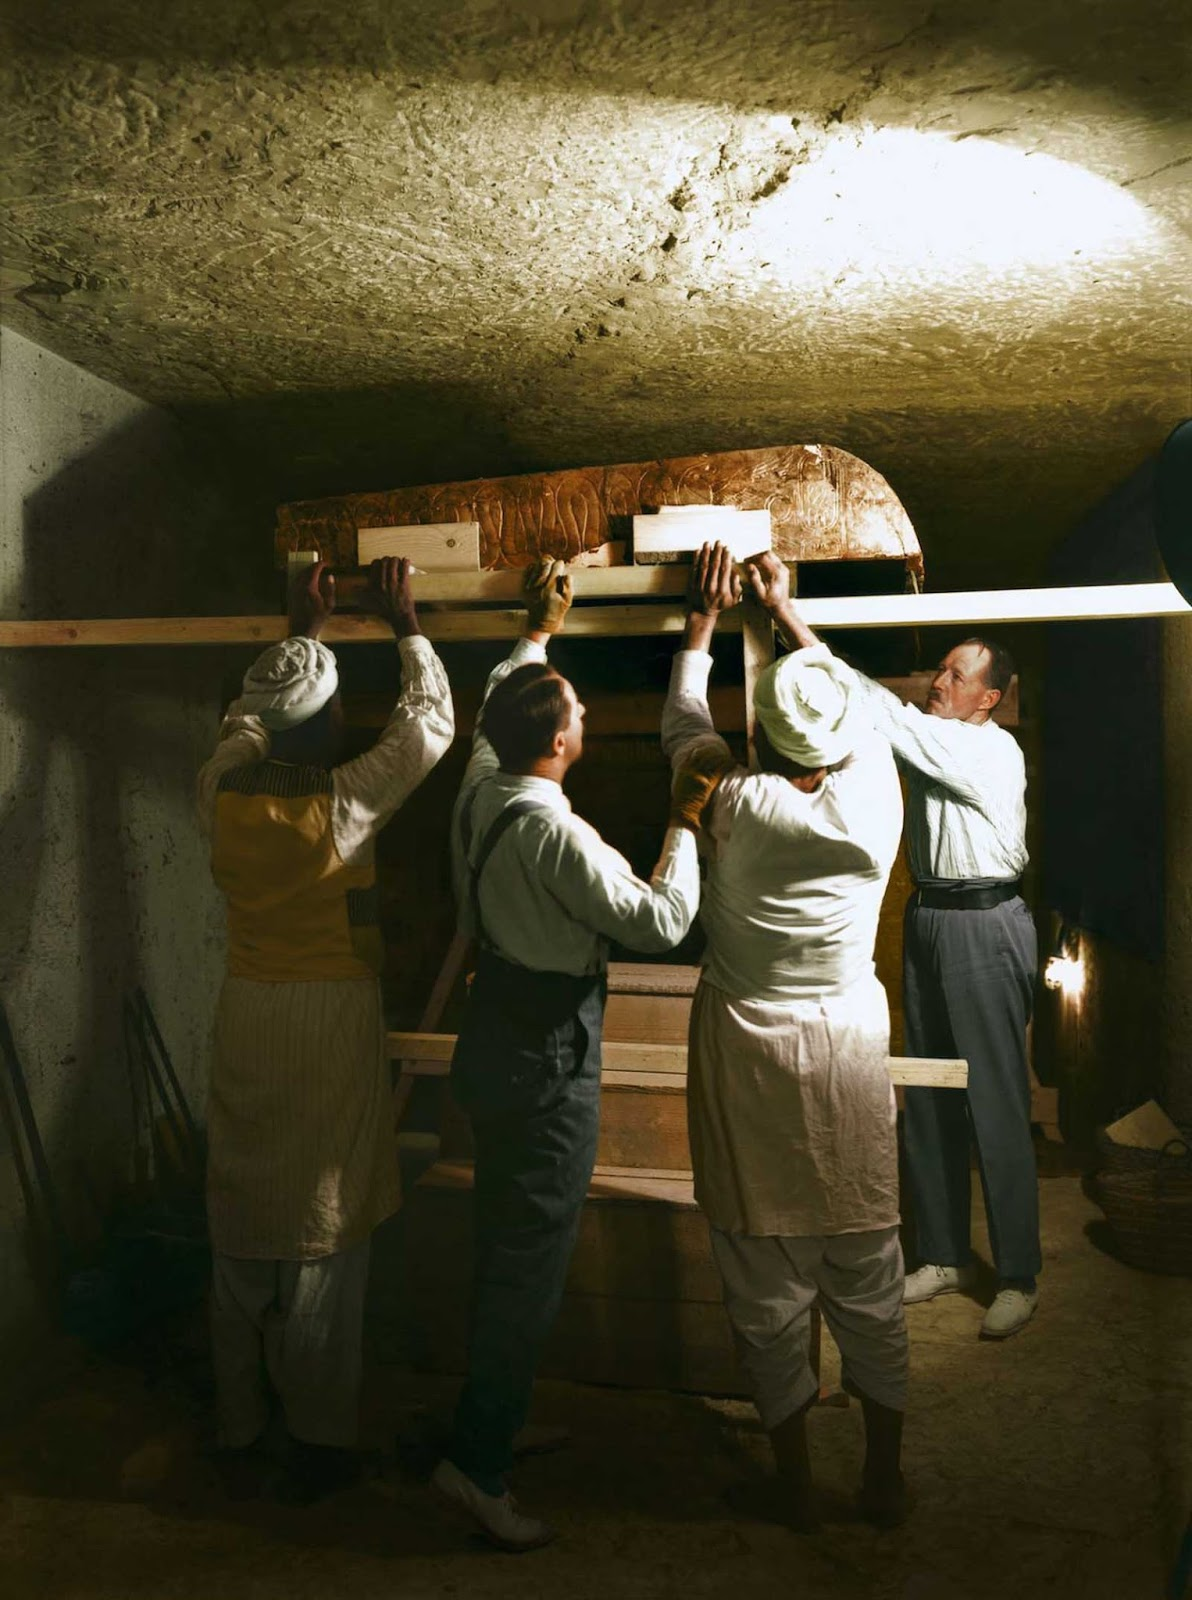 Carter, Callender and two Egyptian workers carefully dismantle one of the golden shrines within the burial chamber.